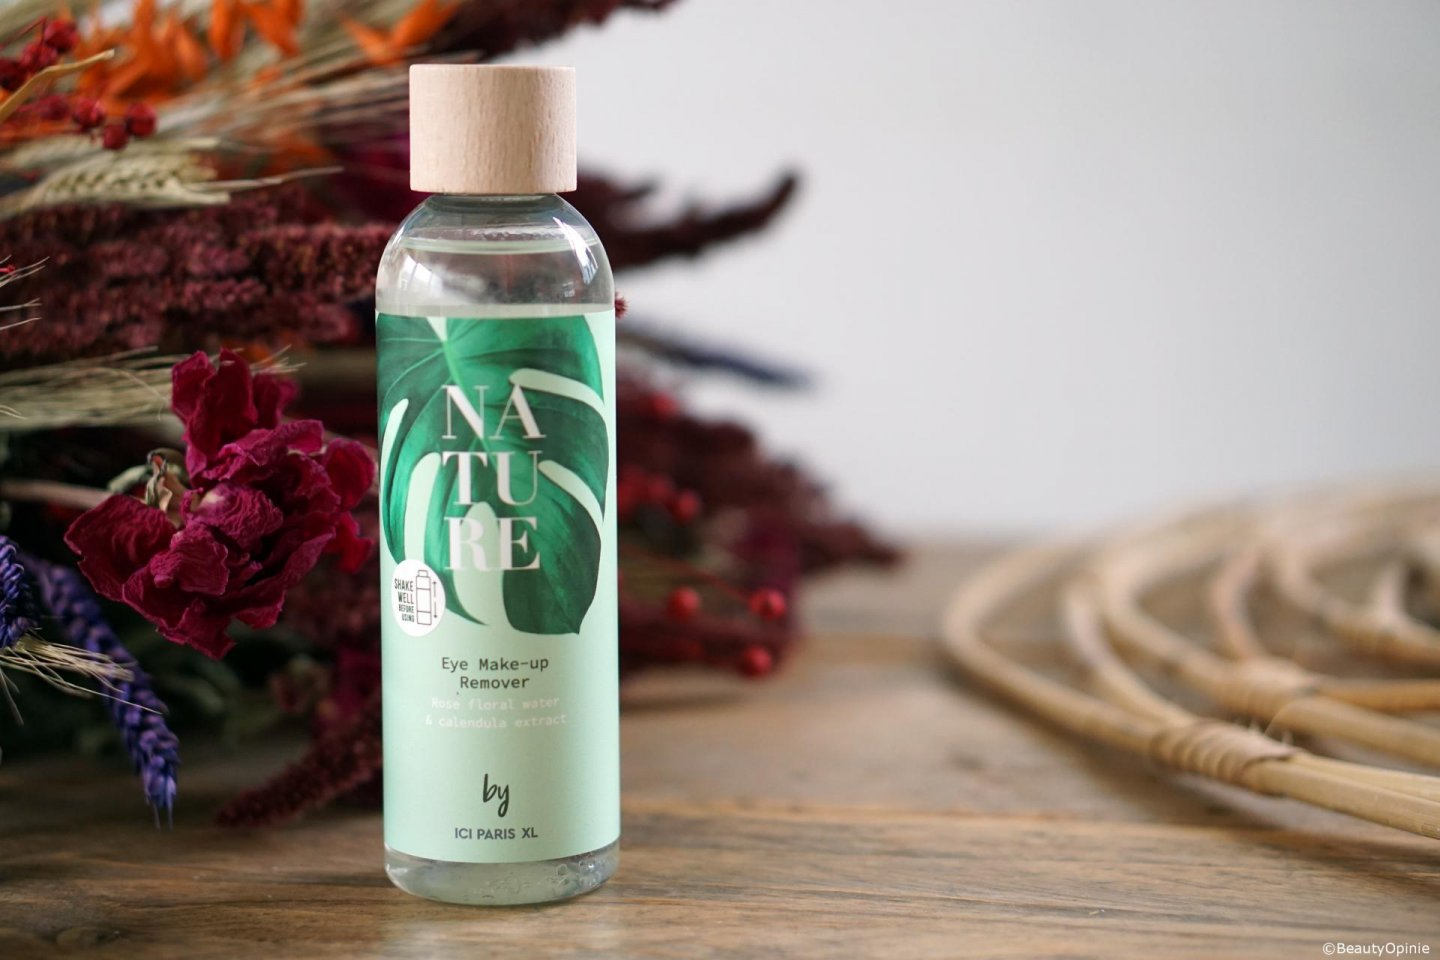 ICI PARIS XL nature eye make-up remover review